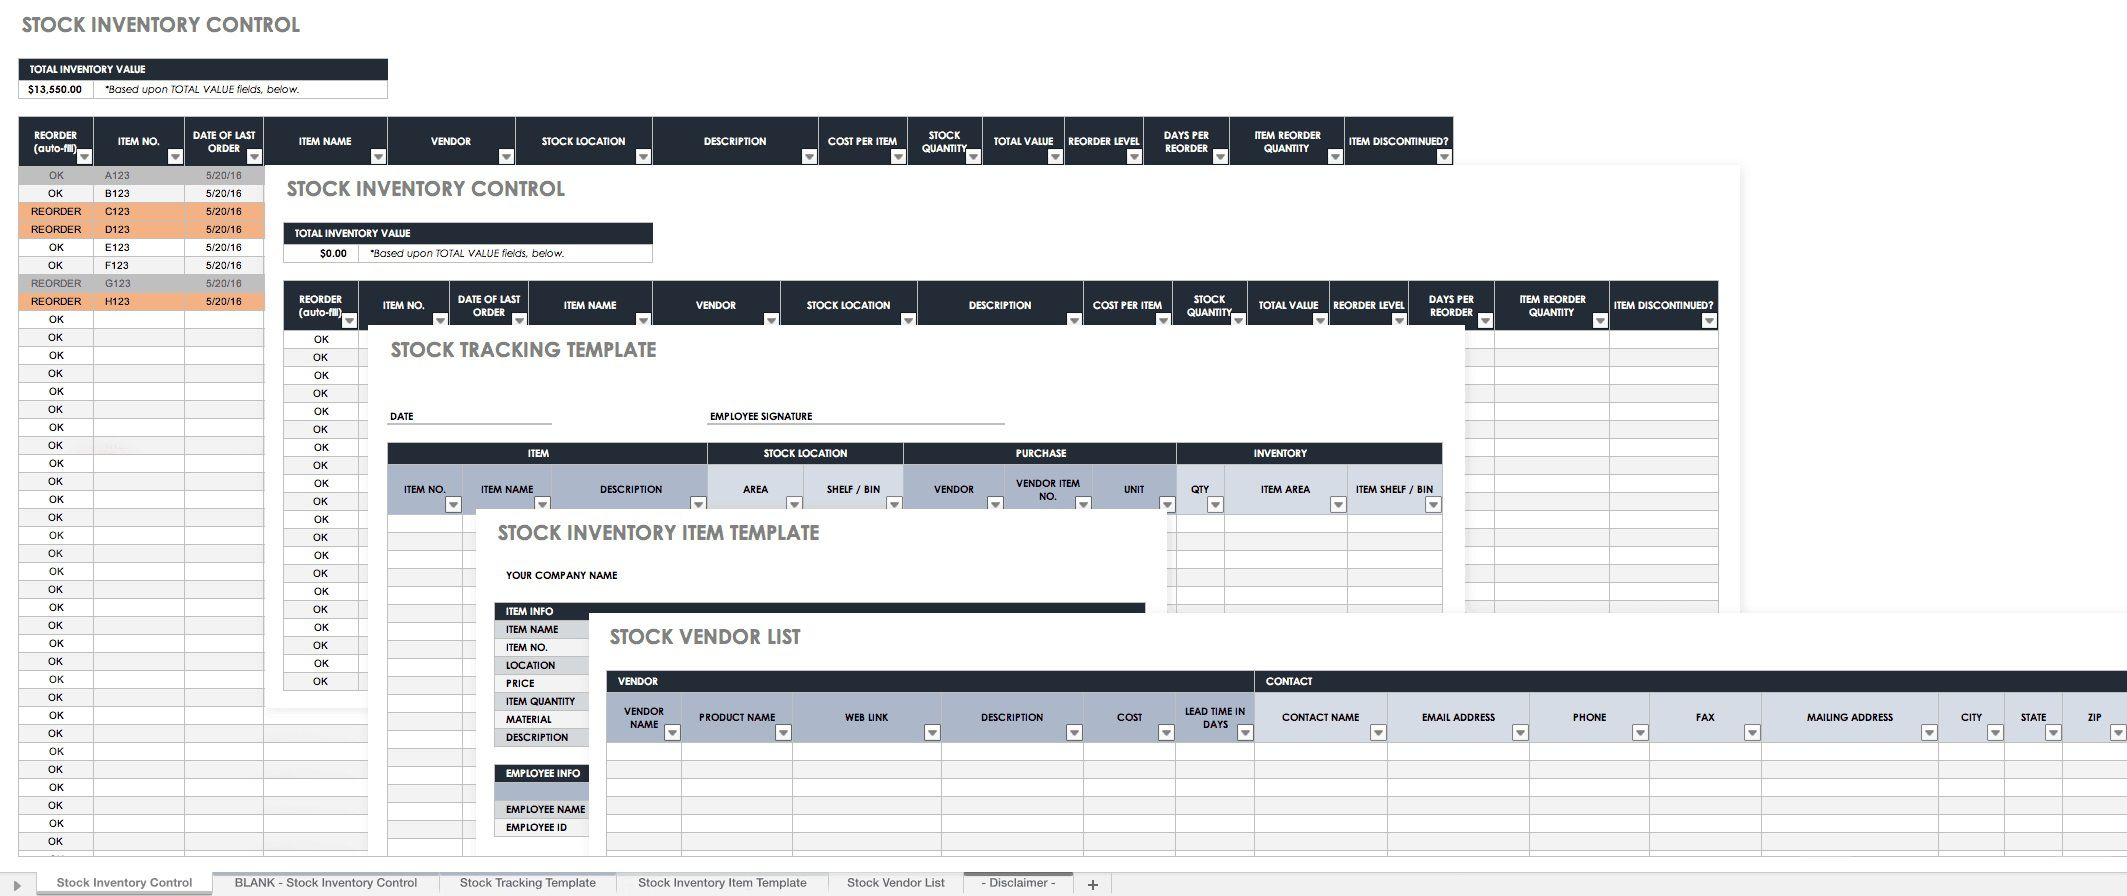 006 Excellent Excel Inventory Template With Formula High Definition  Formulas Free Uk PdfFull